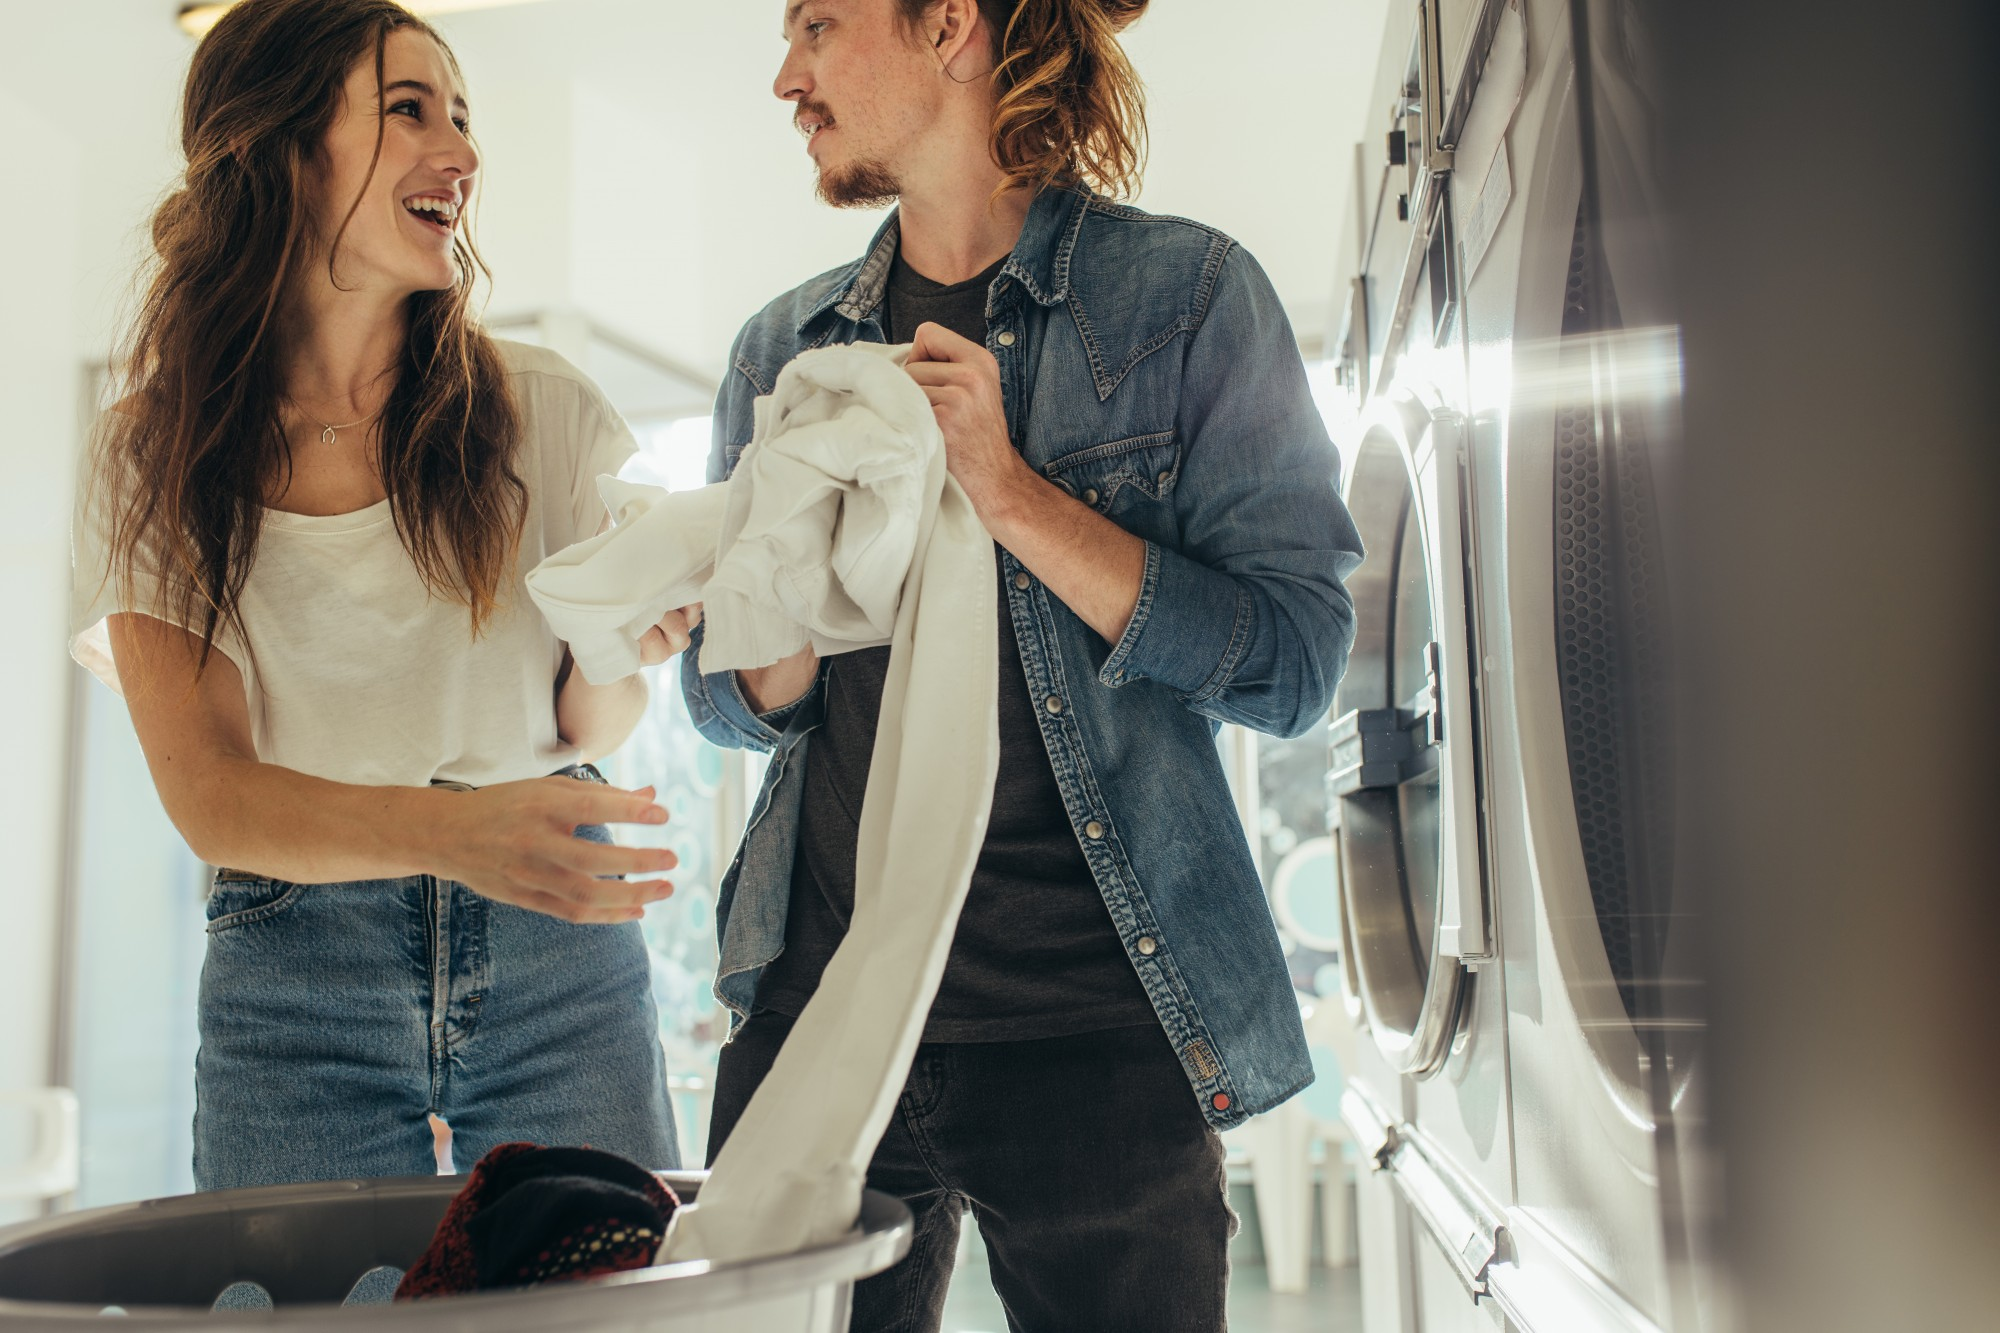 3 Ways to Practice Laundry Room Etiquette